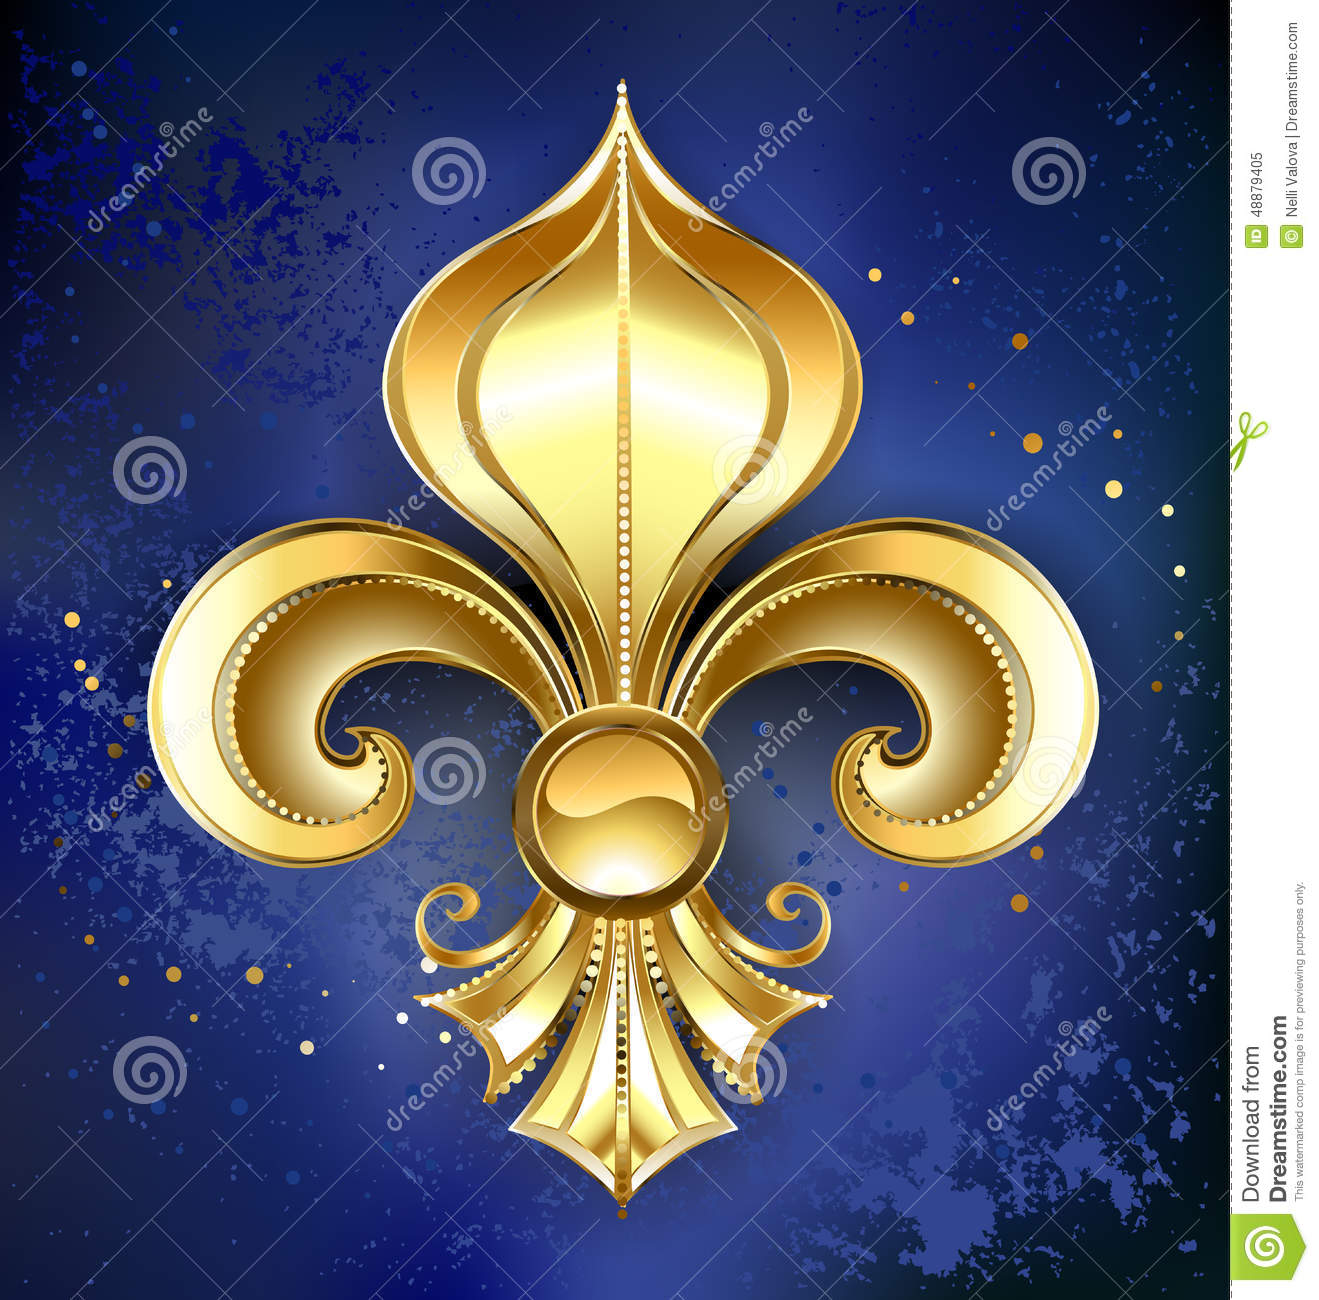 Gold Fleur-de-lis On A Blue Background Stock Photo - Image: 48879405